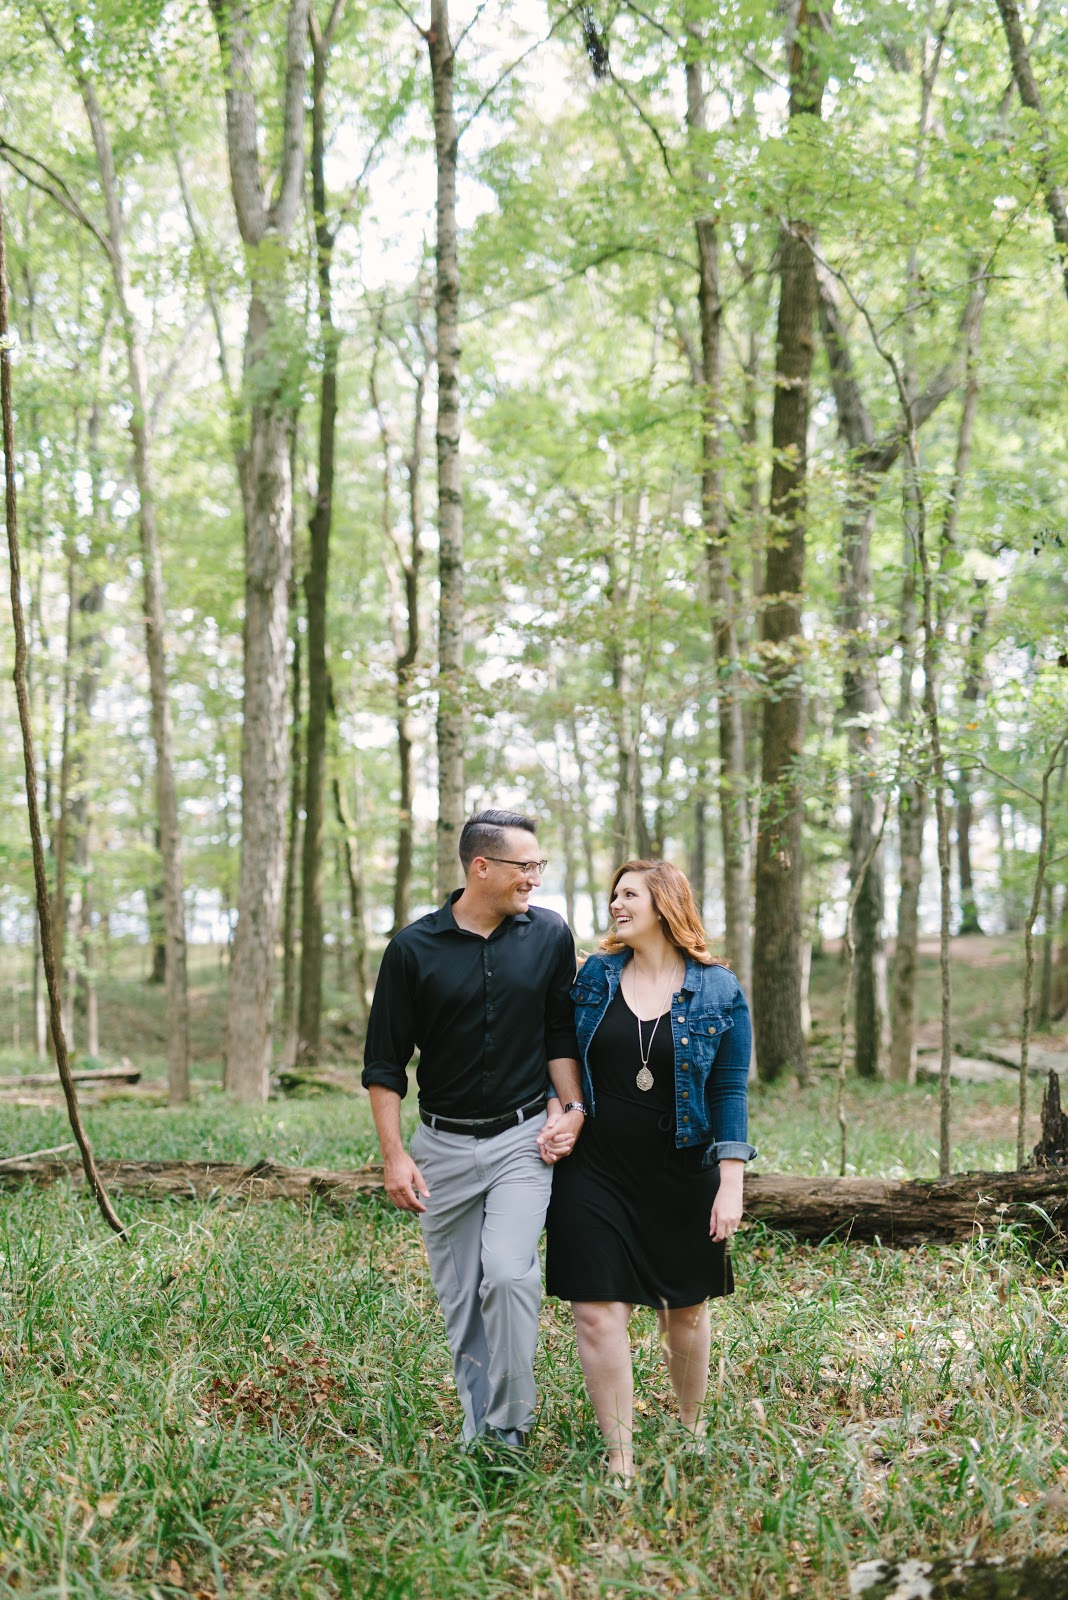 Long Hunter State Park: The Best Nashville Engagement Session Locations from Kéra Photography featured on Nashville Bride Guide